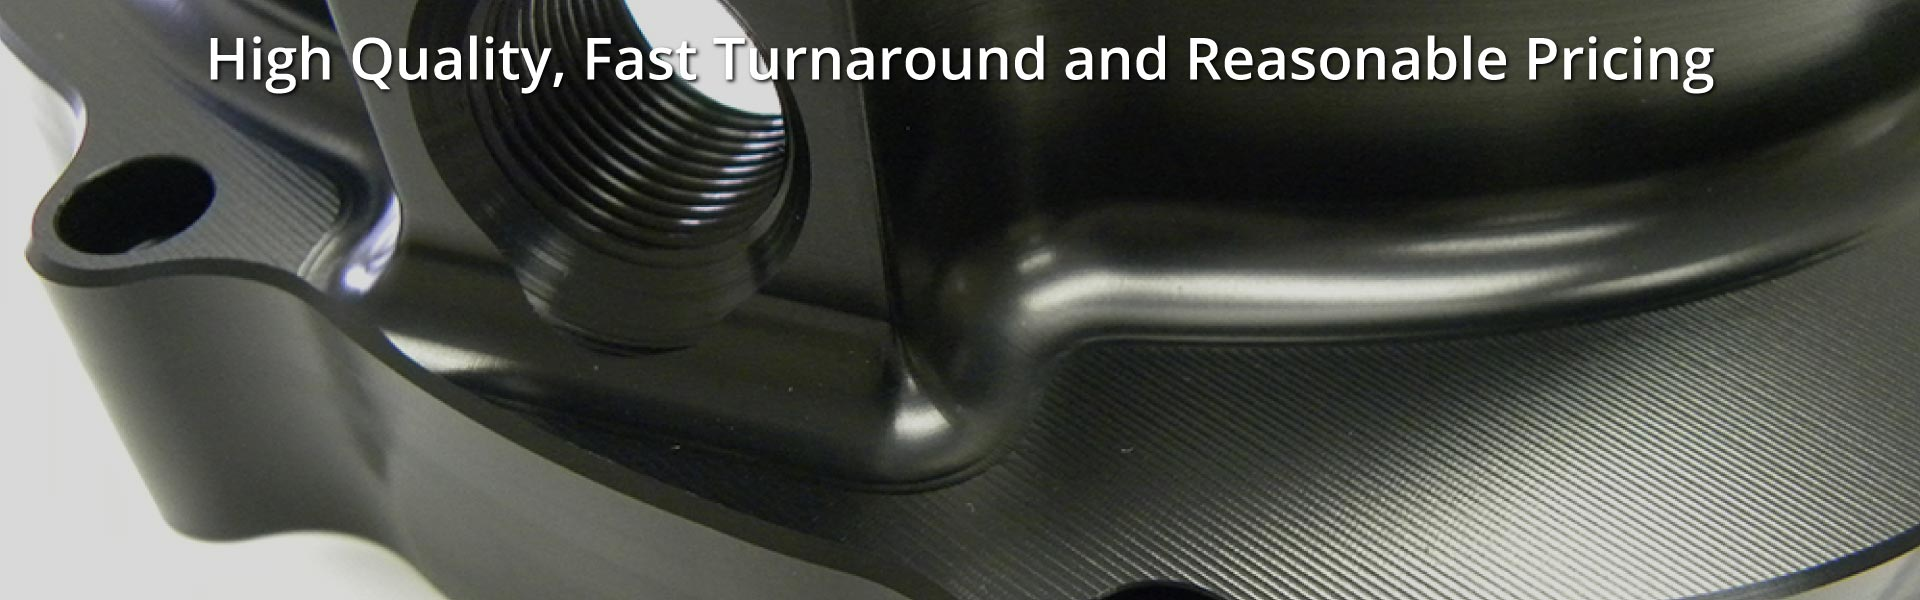 High Quality, Fast Turnaround and Reasonable Pricing | Black Anodizing on Aluminum